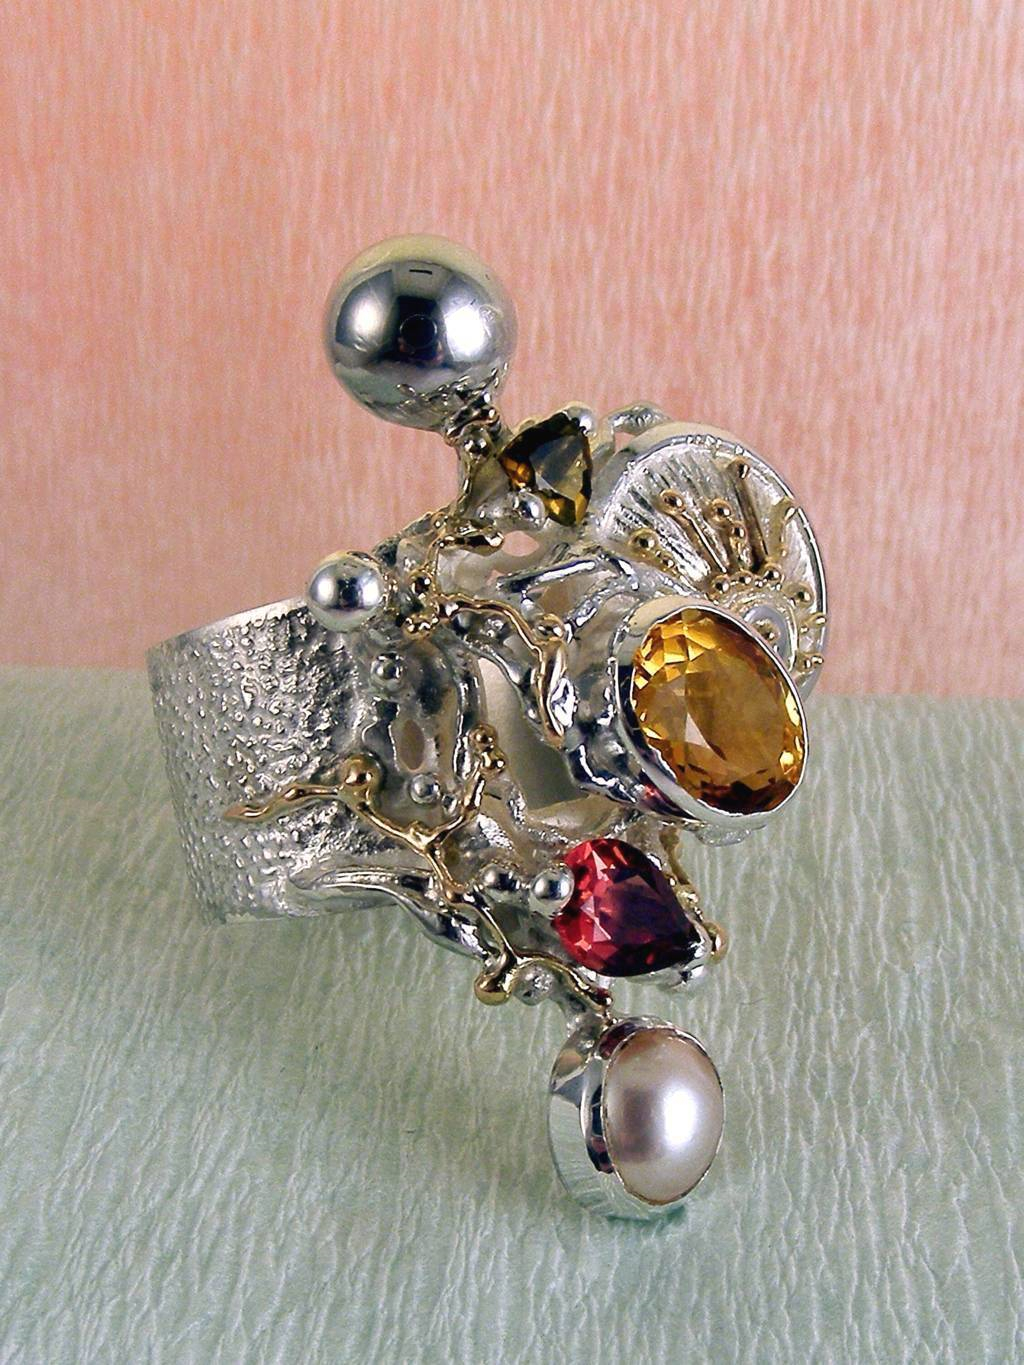 Original Handcrafted, Sterling Silver and Gold, Green Tourmaline, Garnet, Citrine, Pearl, Ring with Citrine and Garnet #9435